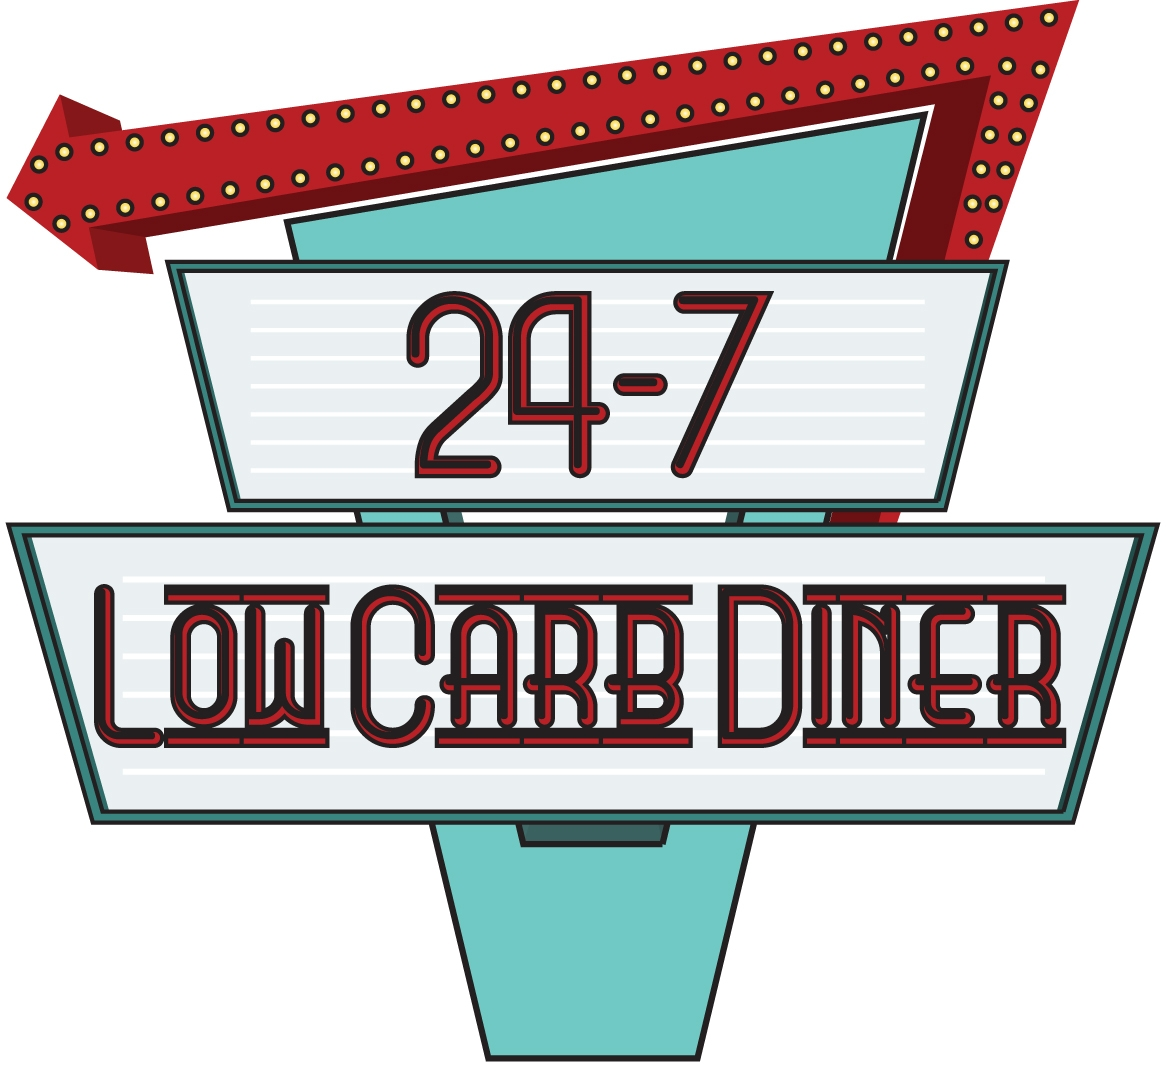 50s Diner Signs Clipart - Clipart Suggest